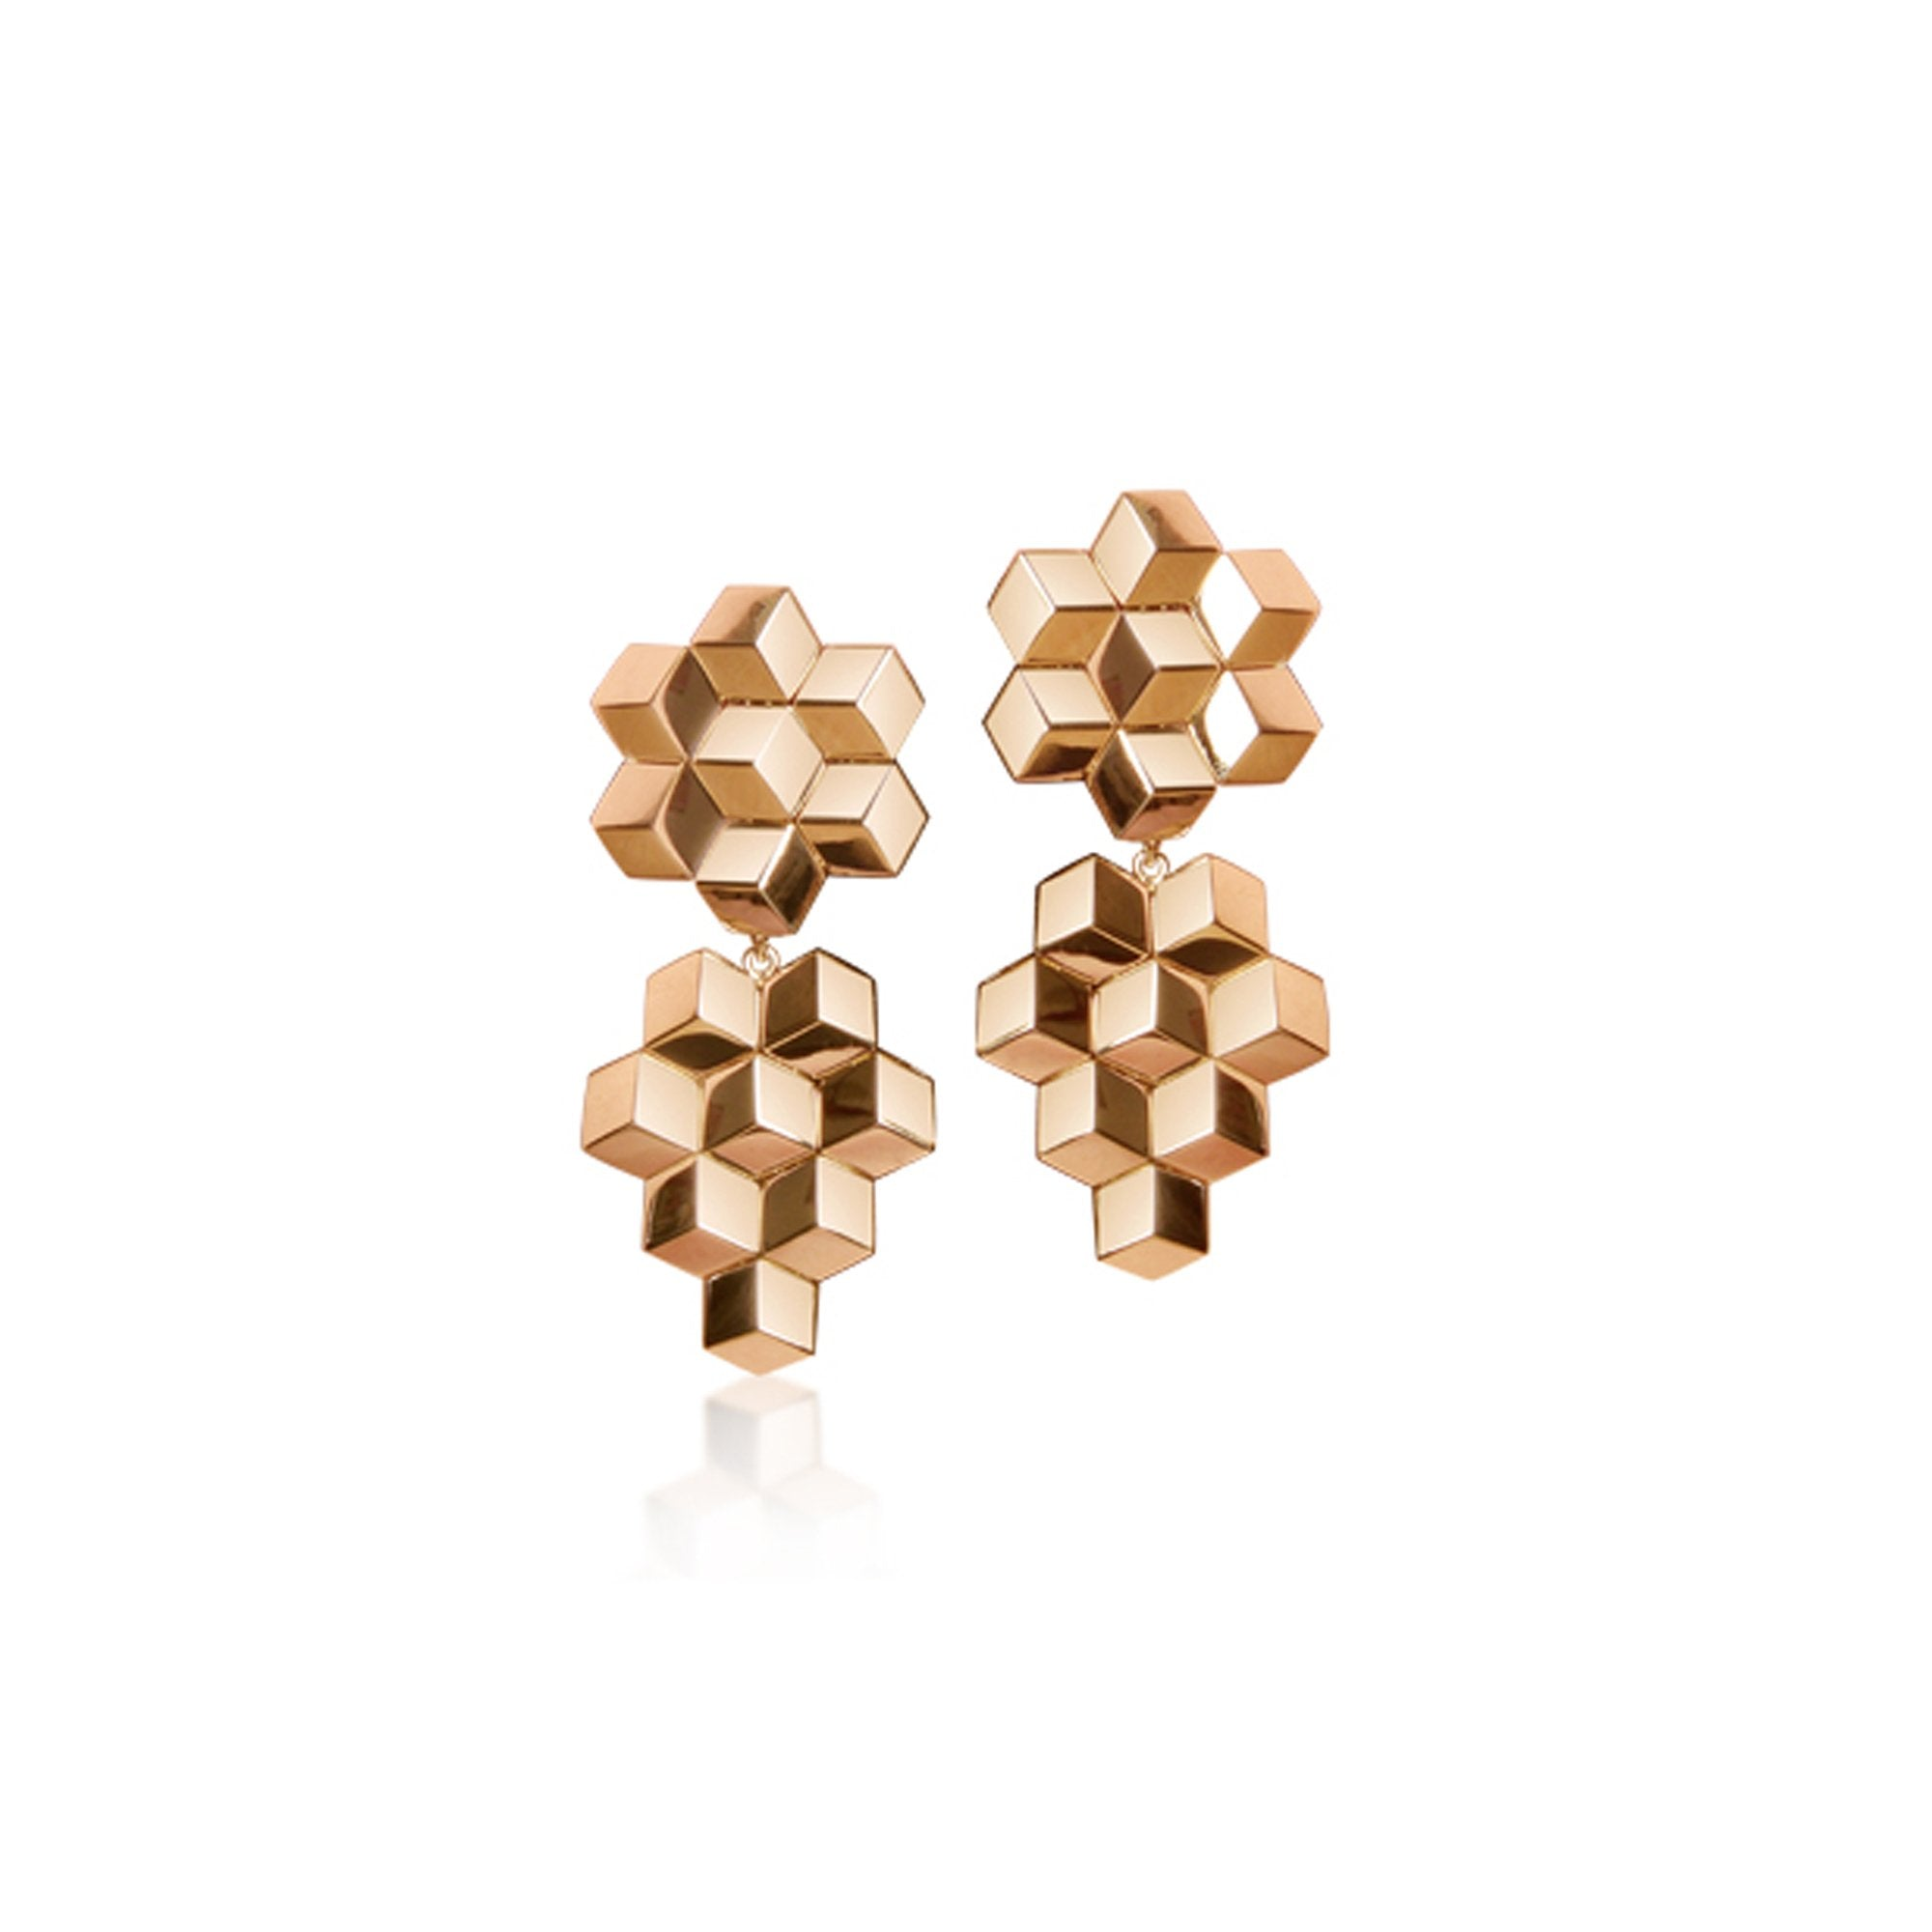 Rose Gold 'Brillante®' Earrings, Petite - Paolo Costagli - 1